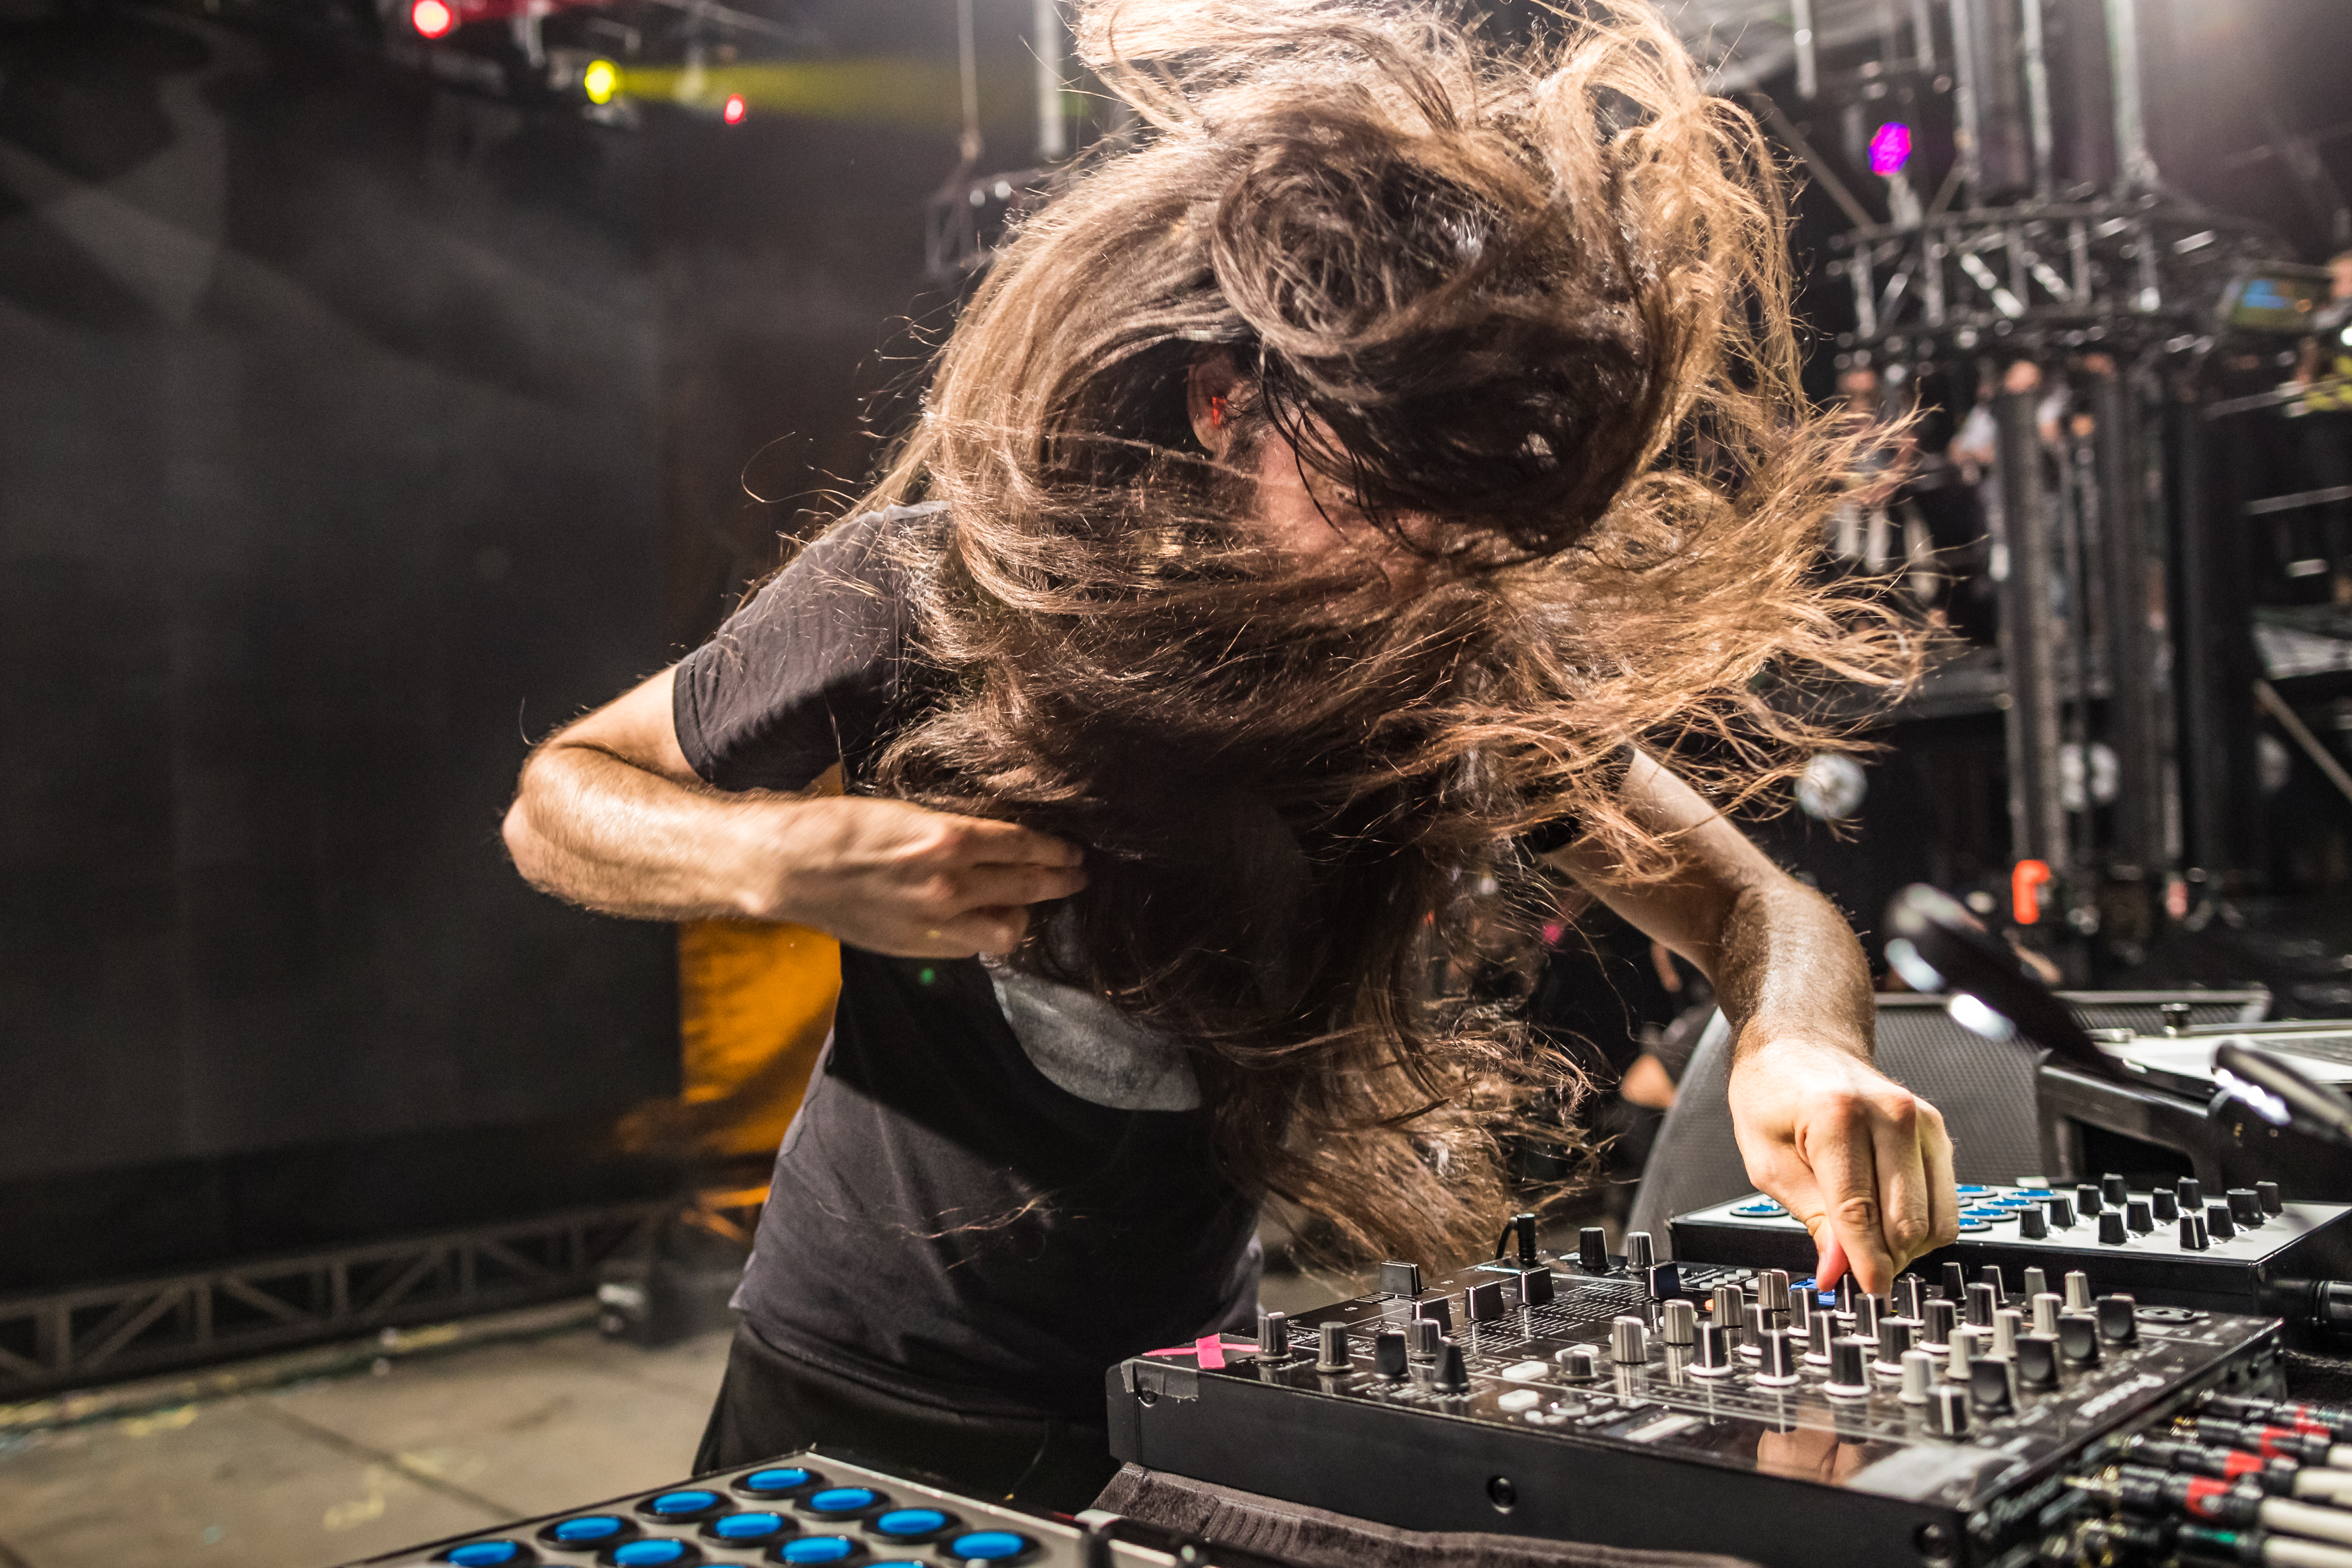 In Action: Bassnectar drops a beat.